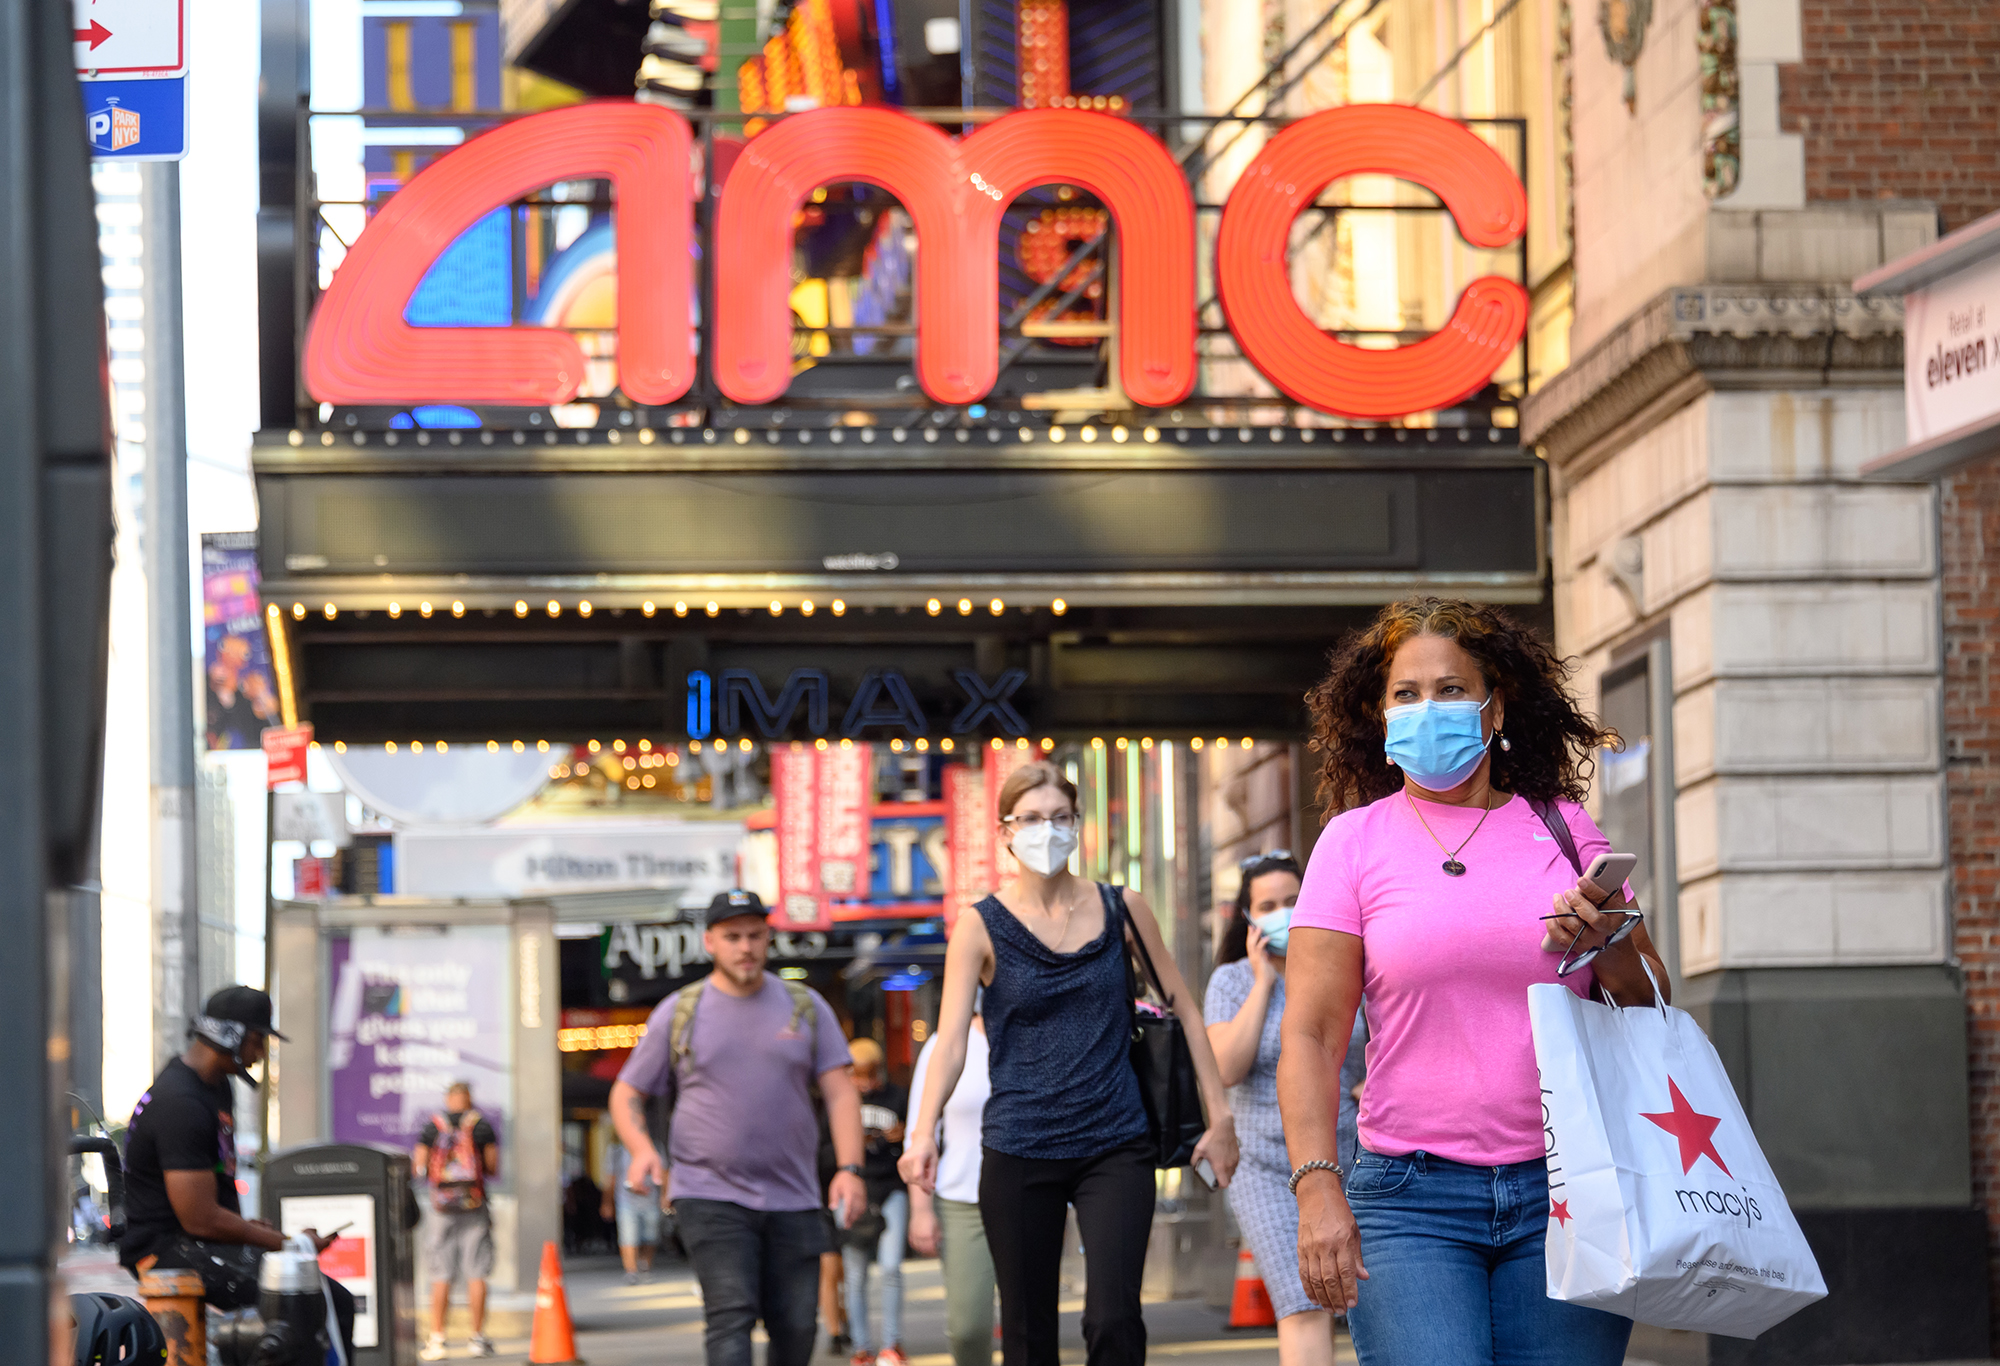 People wear protective face masks outside the AMC Empire 25 movie theater in Times Square as the city continues Phase 4 of re-opening following restrictions imposed to slow the spread of coronavirus on August 5, 2020 in New York City. (Noam Galai/Getty Images)